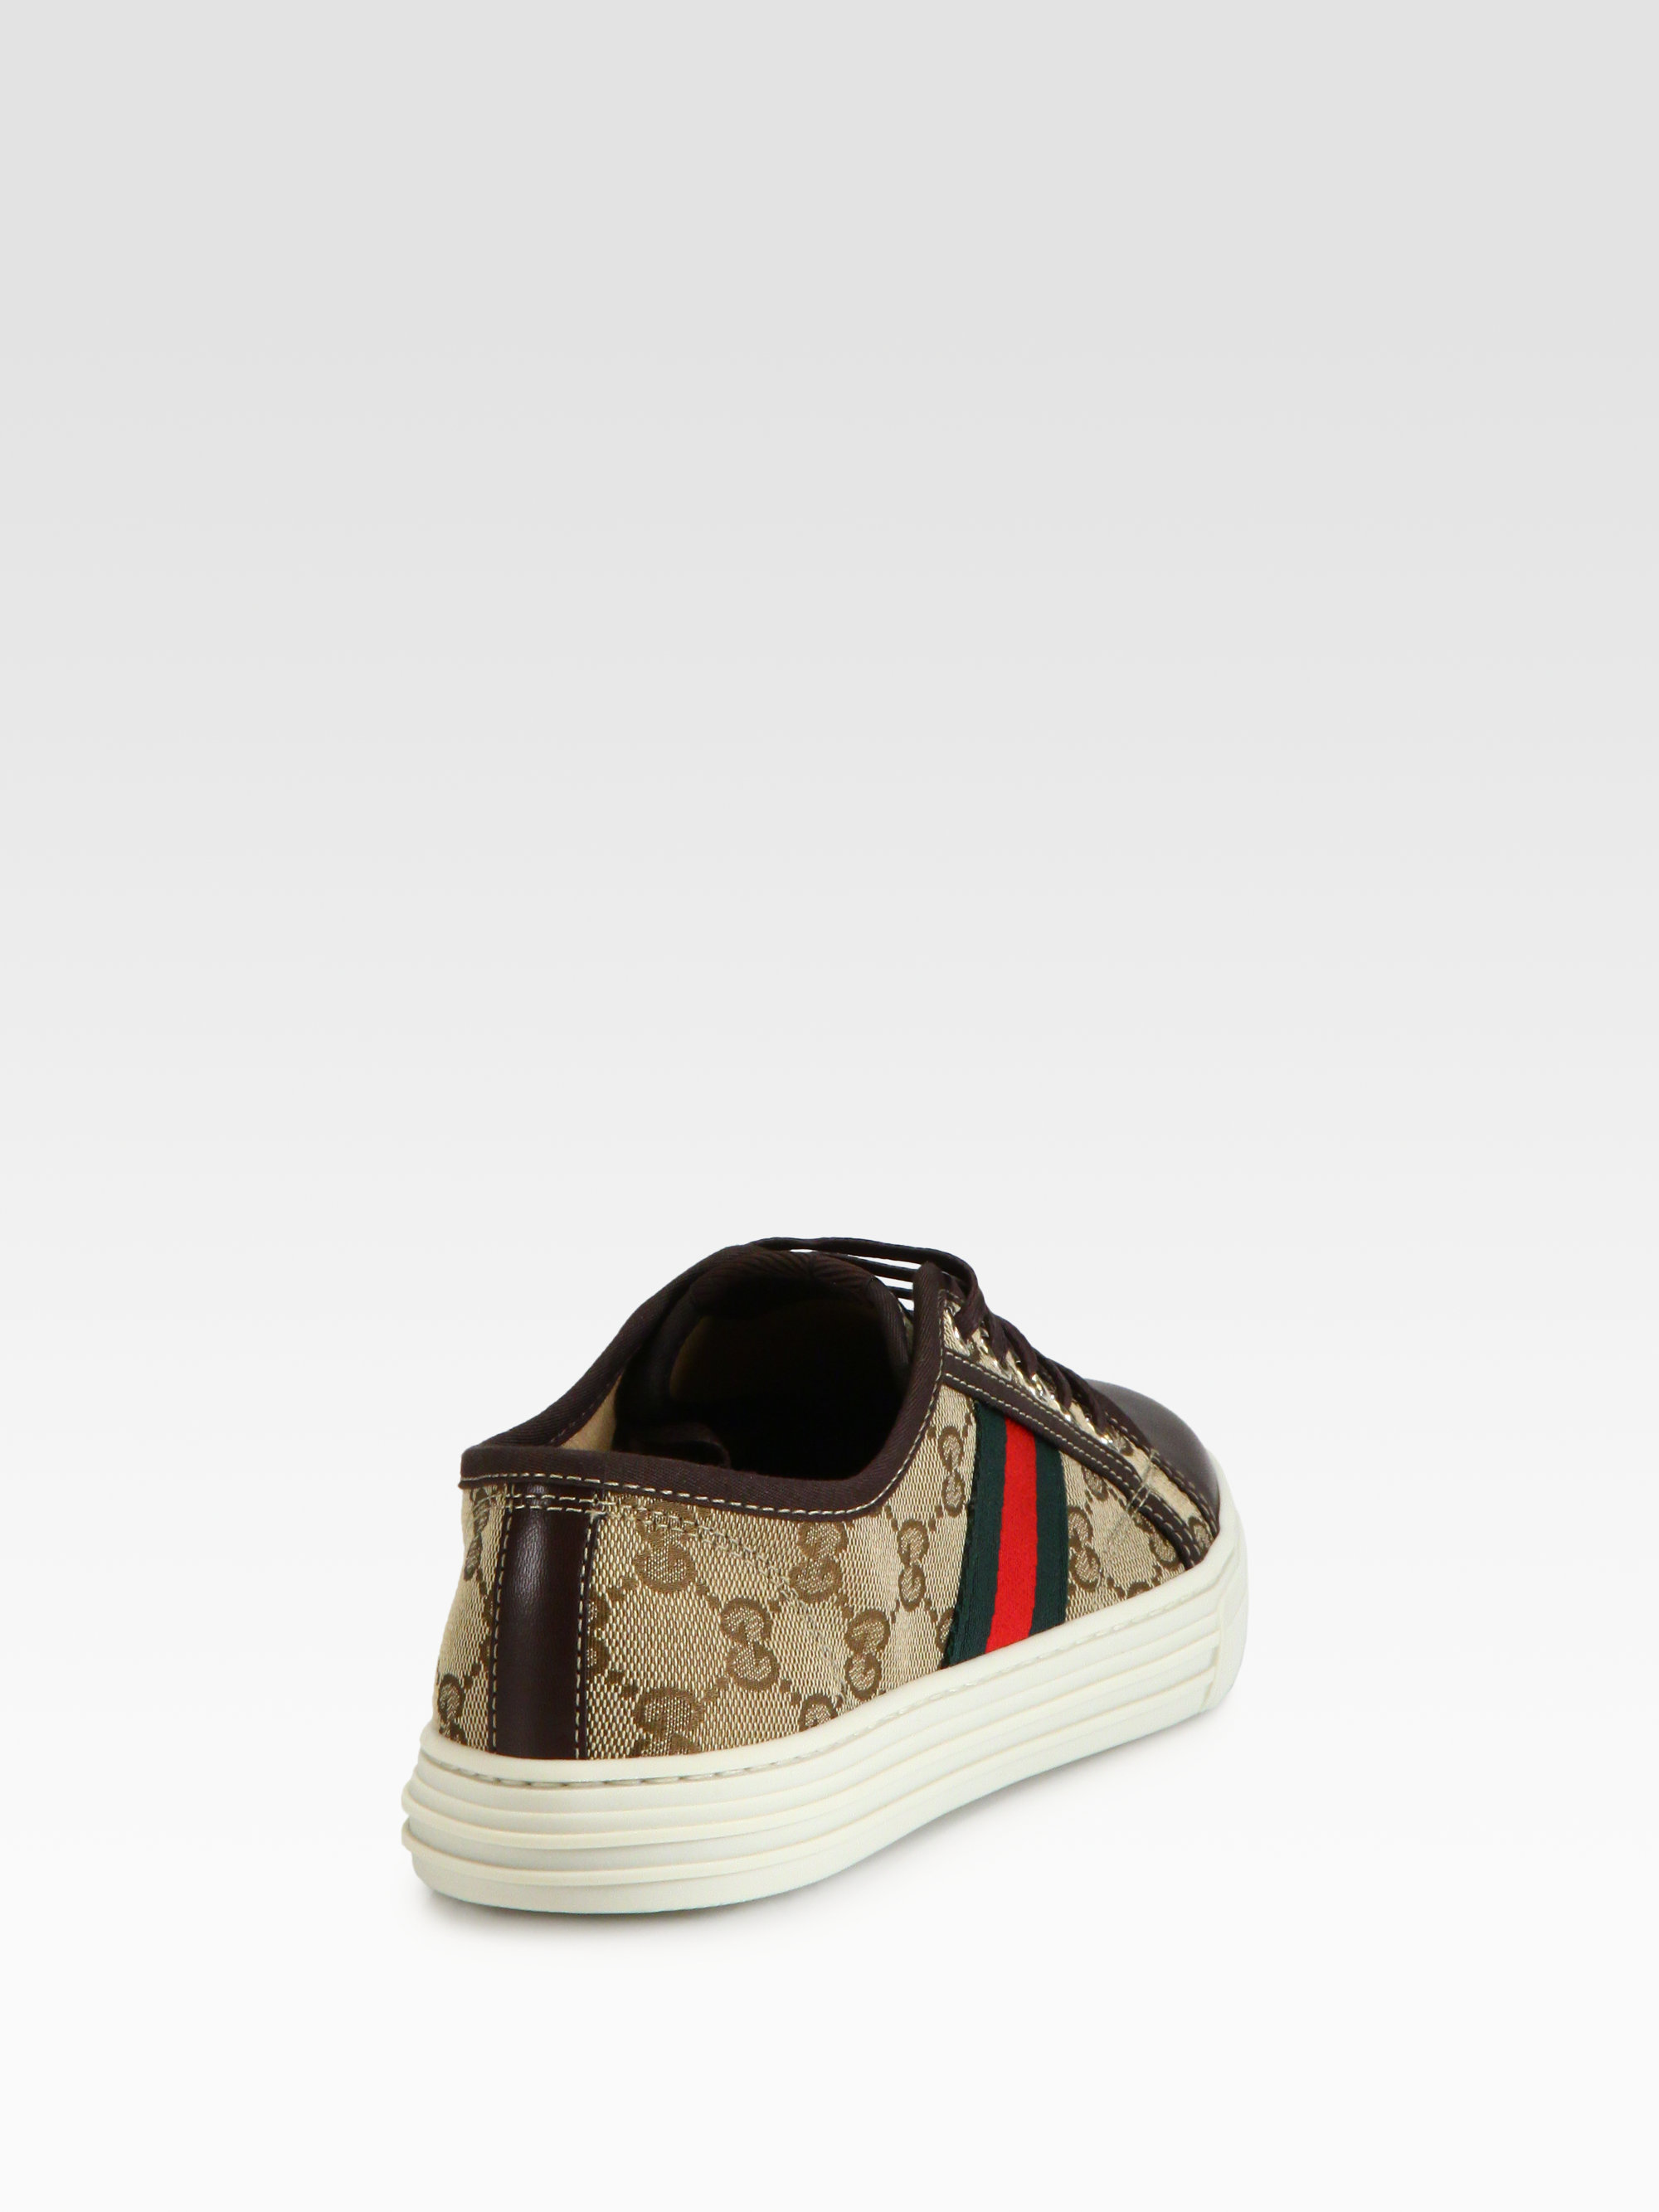 4993a504411 Lyst - Gucci Gg Canvas   Leather Lace-Up Sneakers in Brown